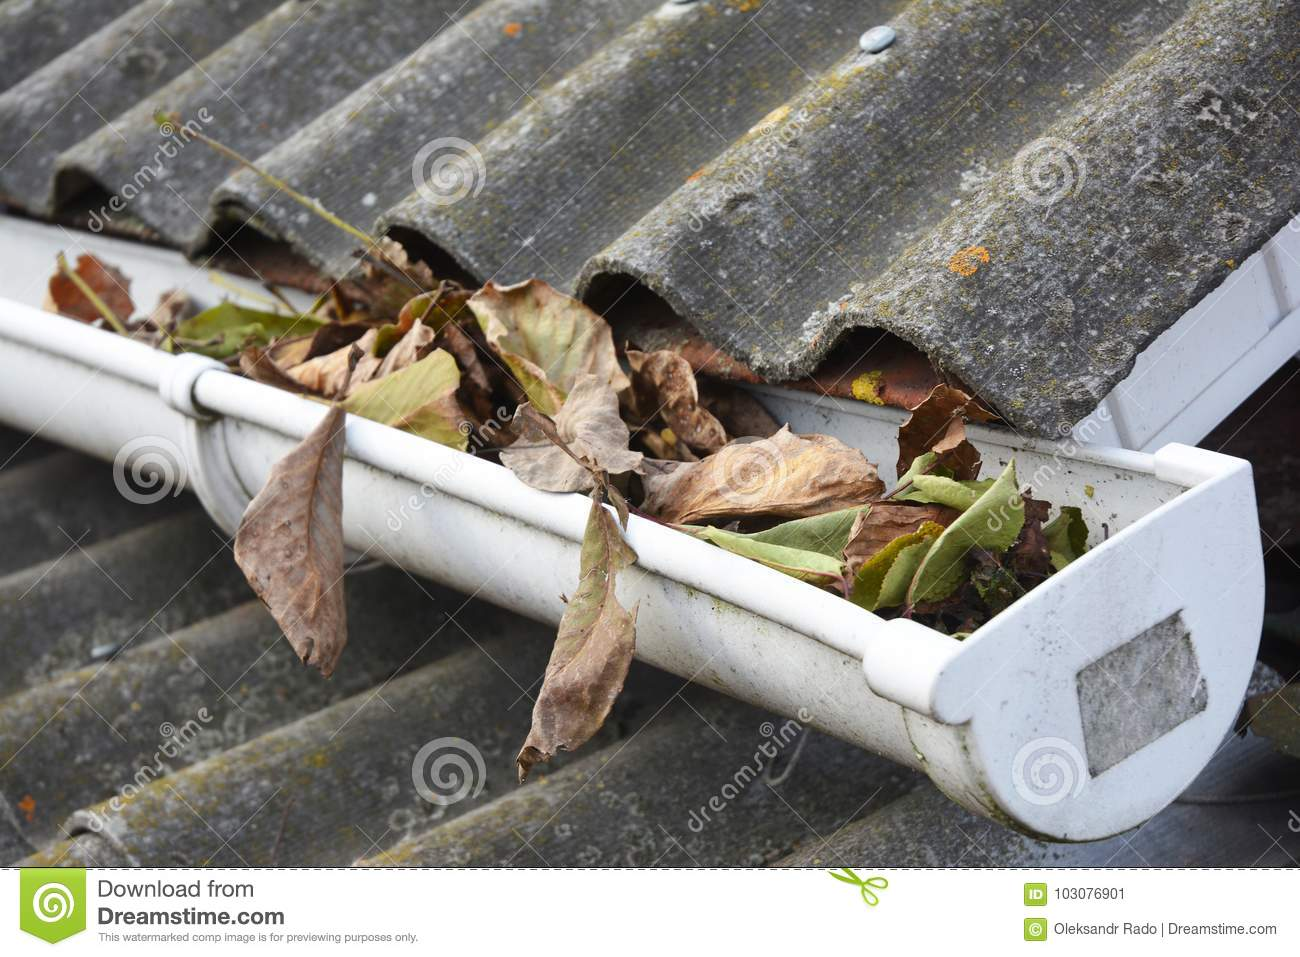 Rain Gutter Cleaning from Leaves in Autumn. Clean Your Gutters Before They Clean Out Your Wallet. Rain Gutter Cleaning.